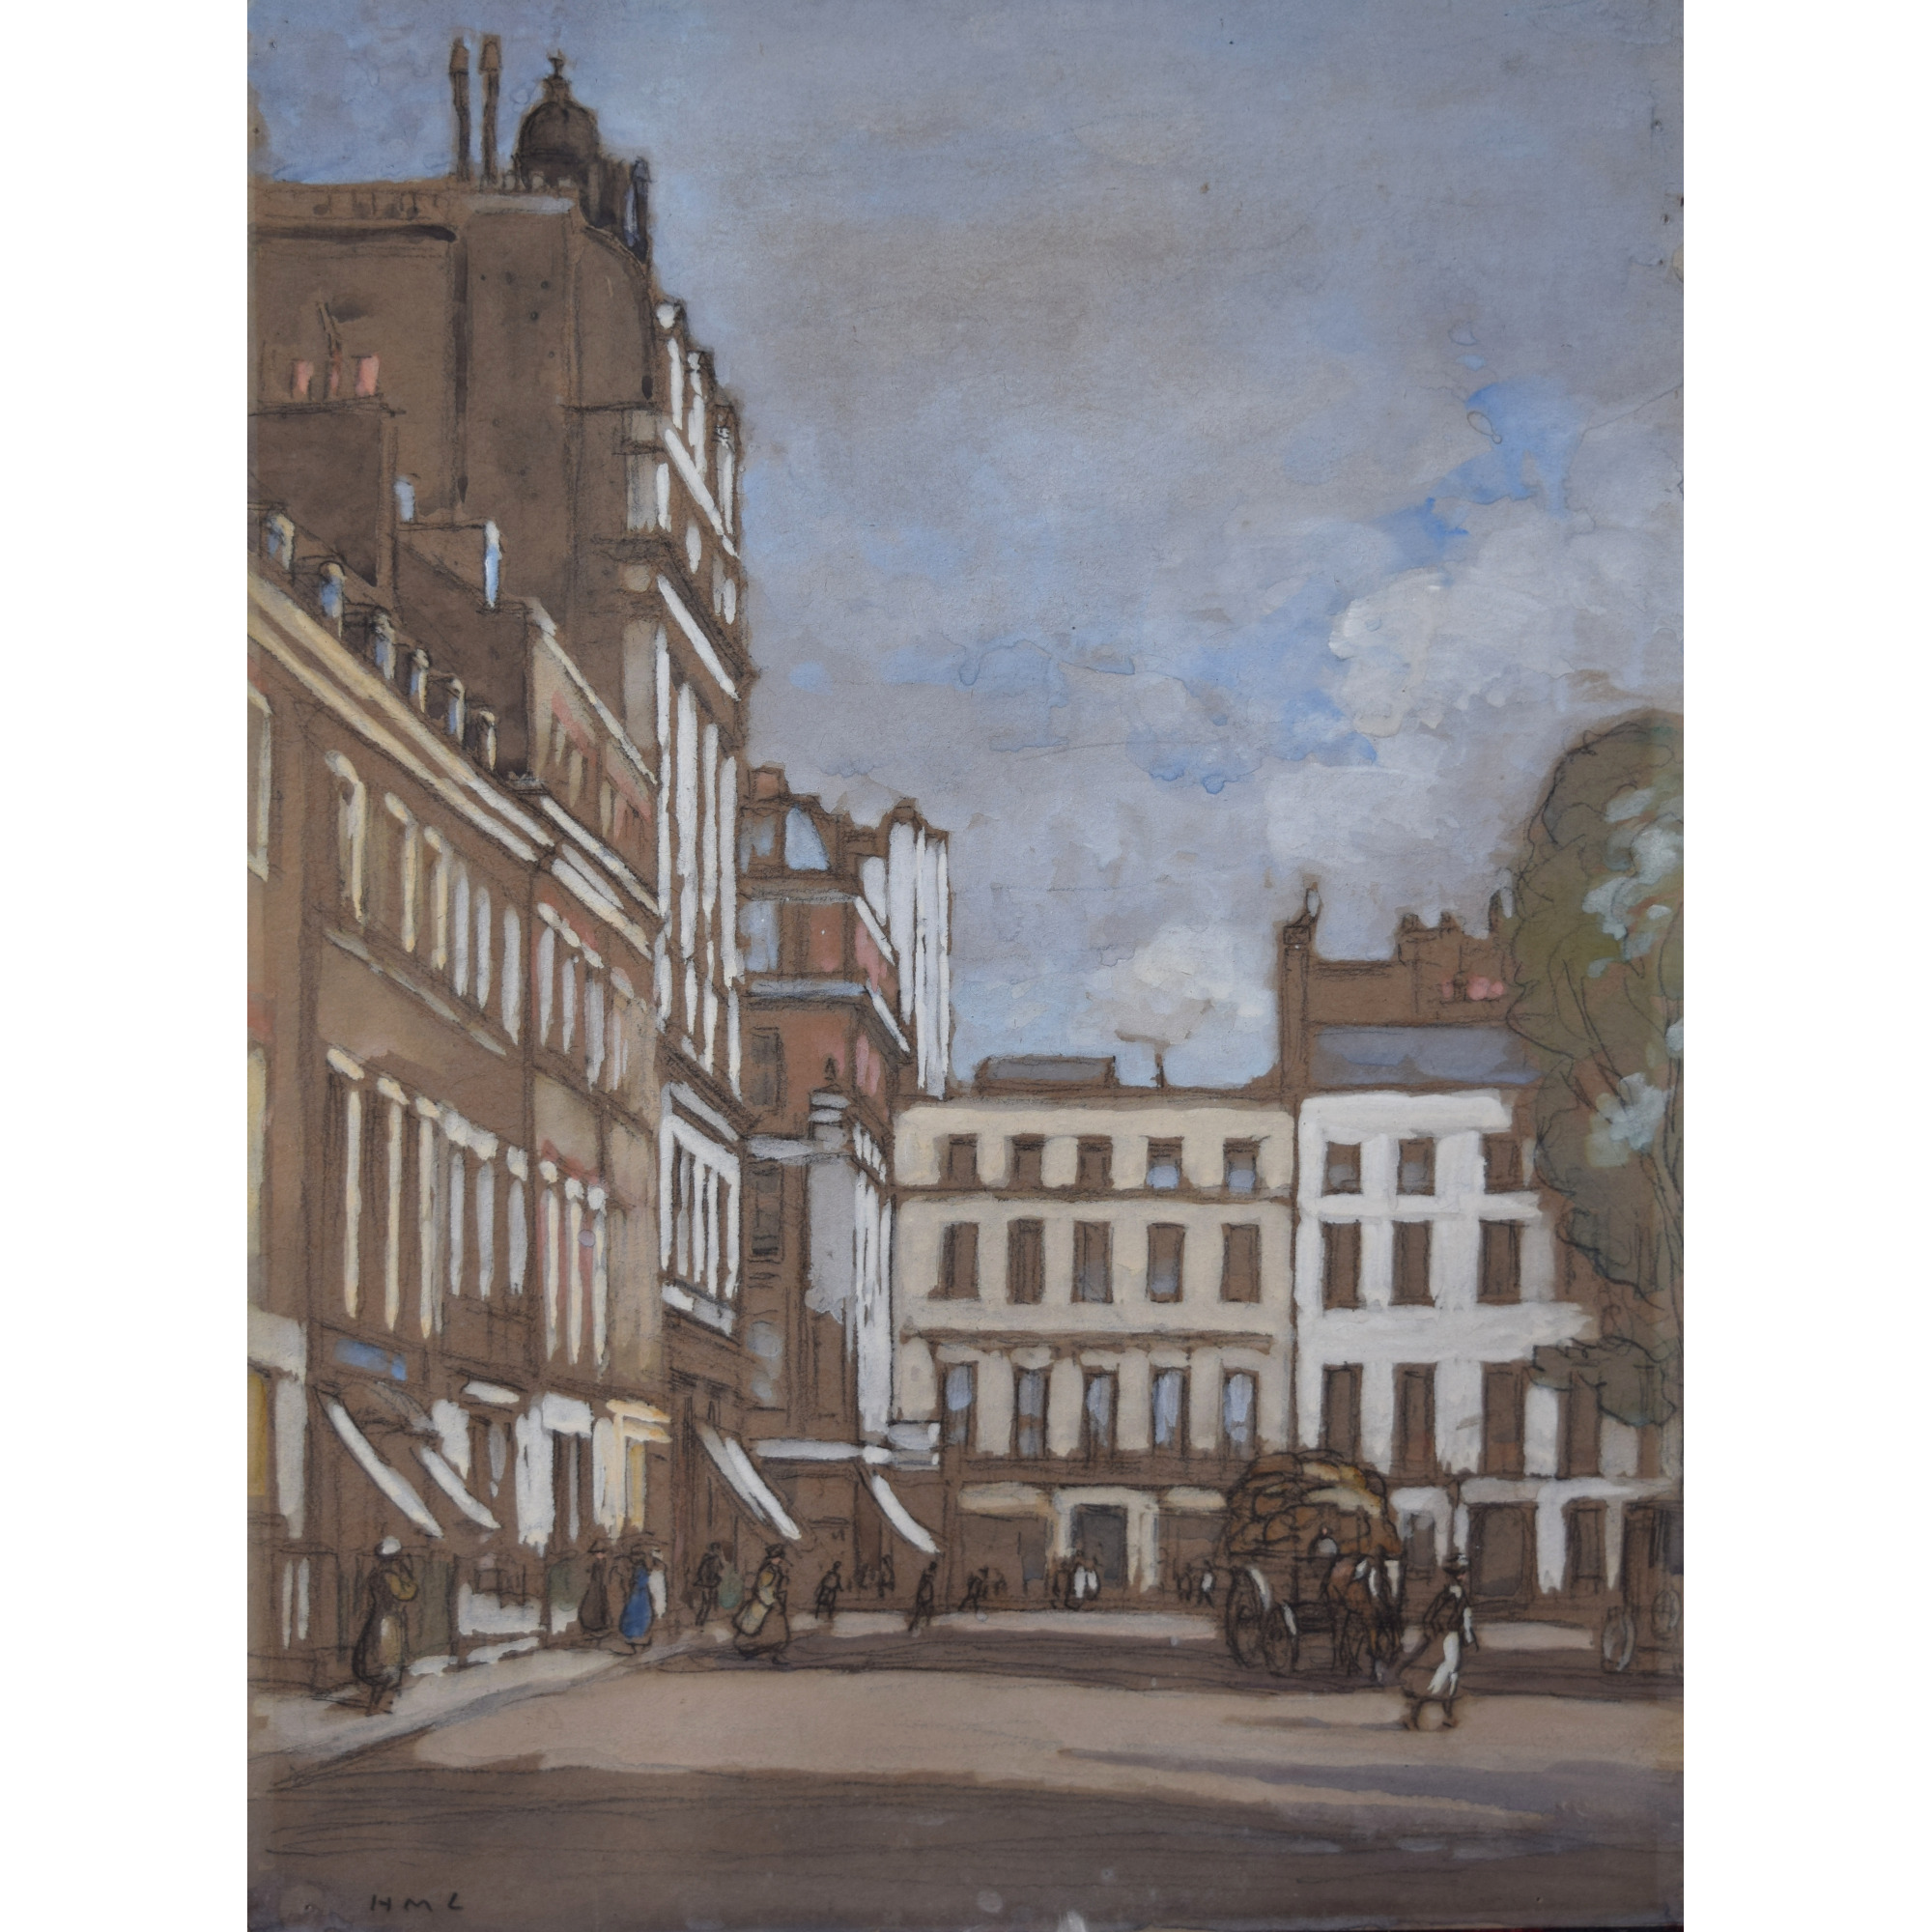 Horace Mann Livens Hanover Square London gouache painting